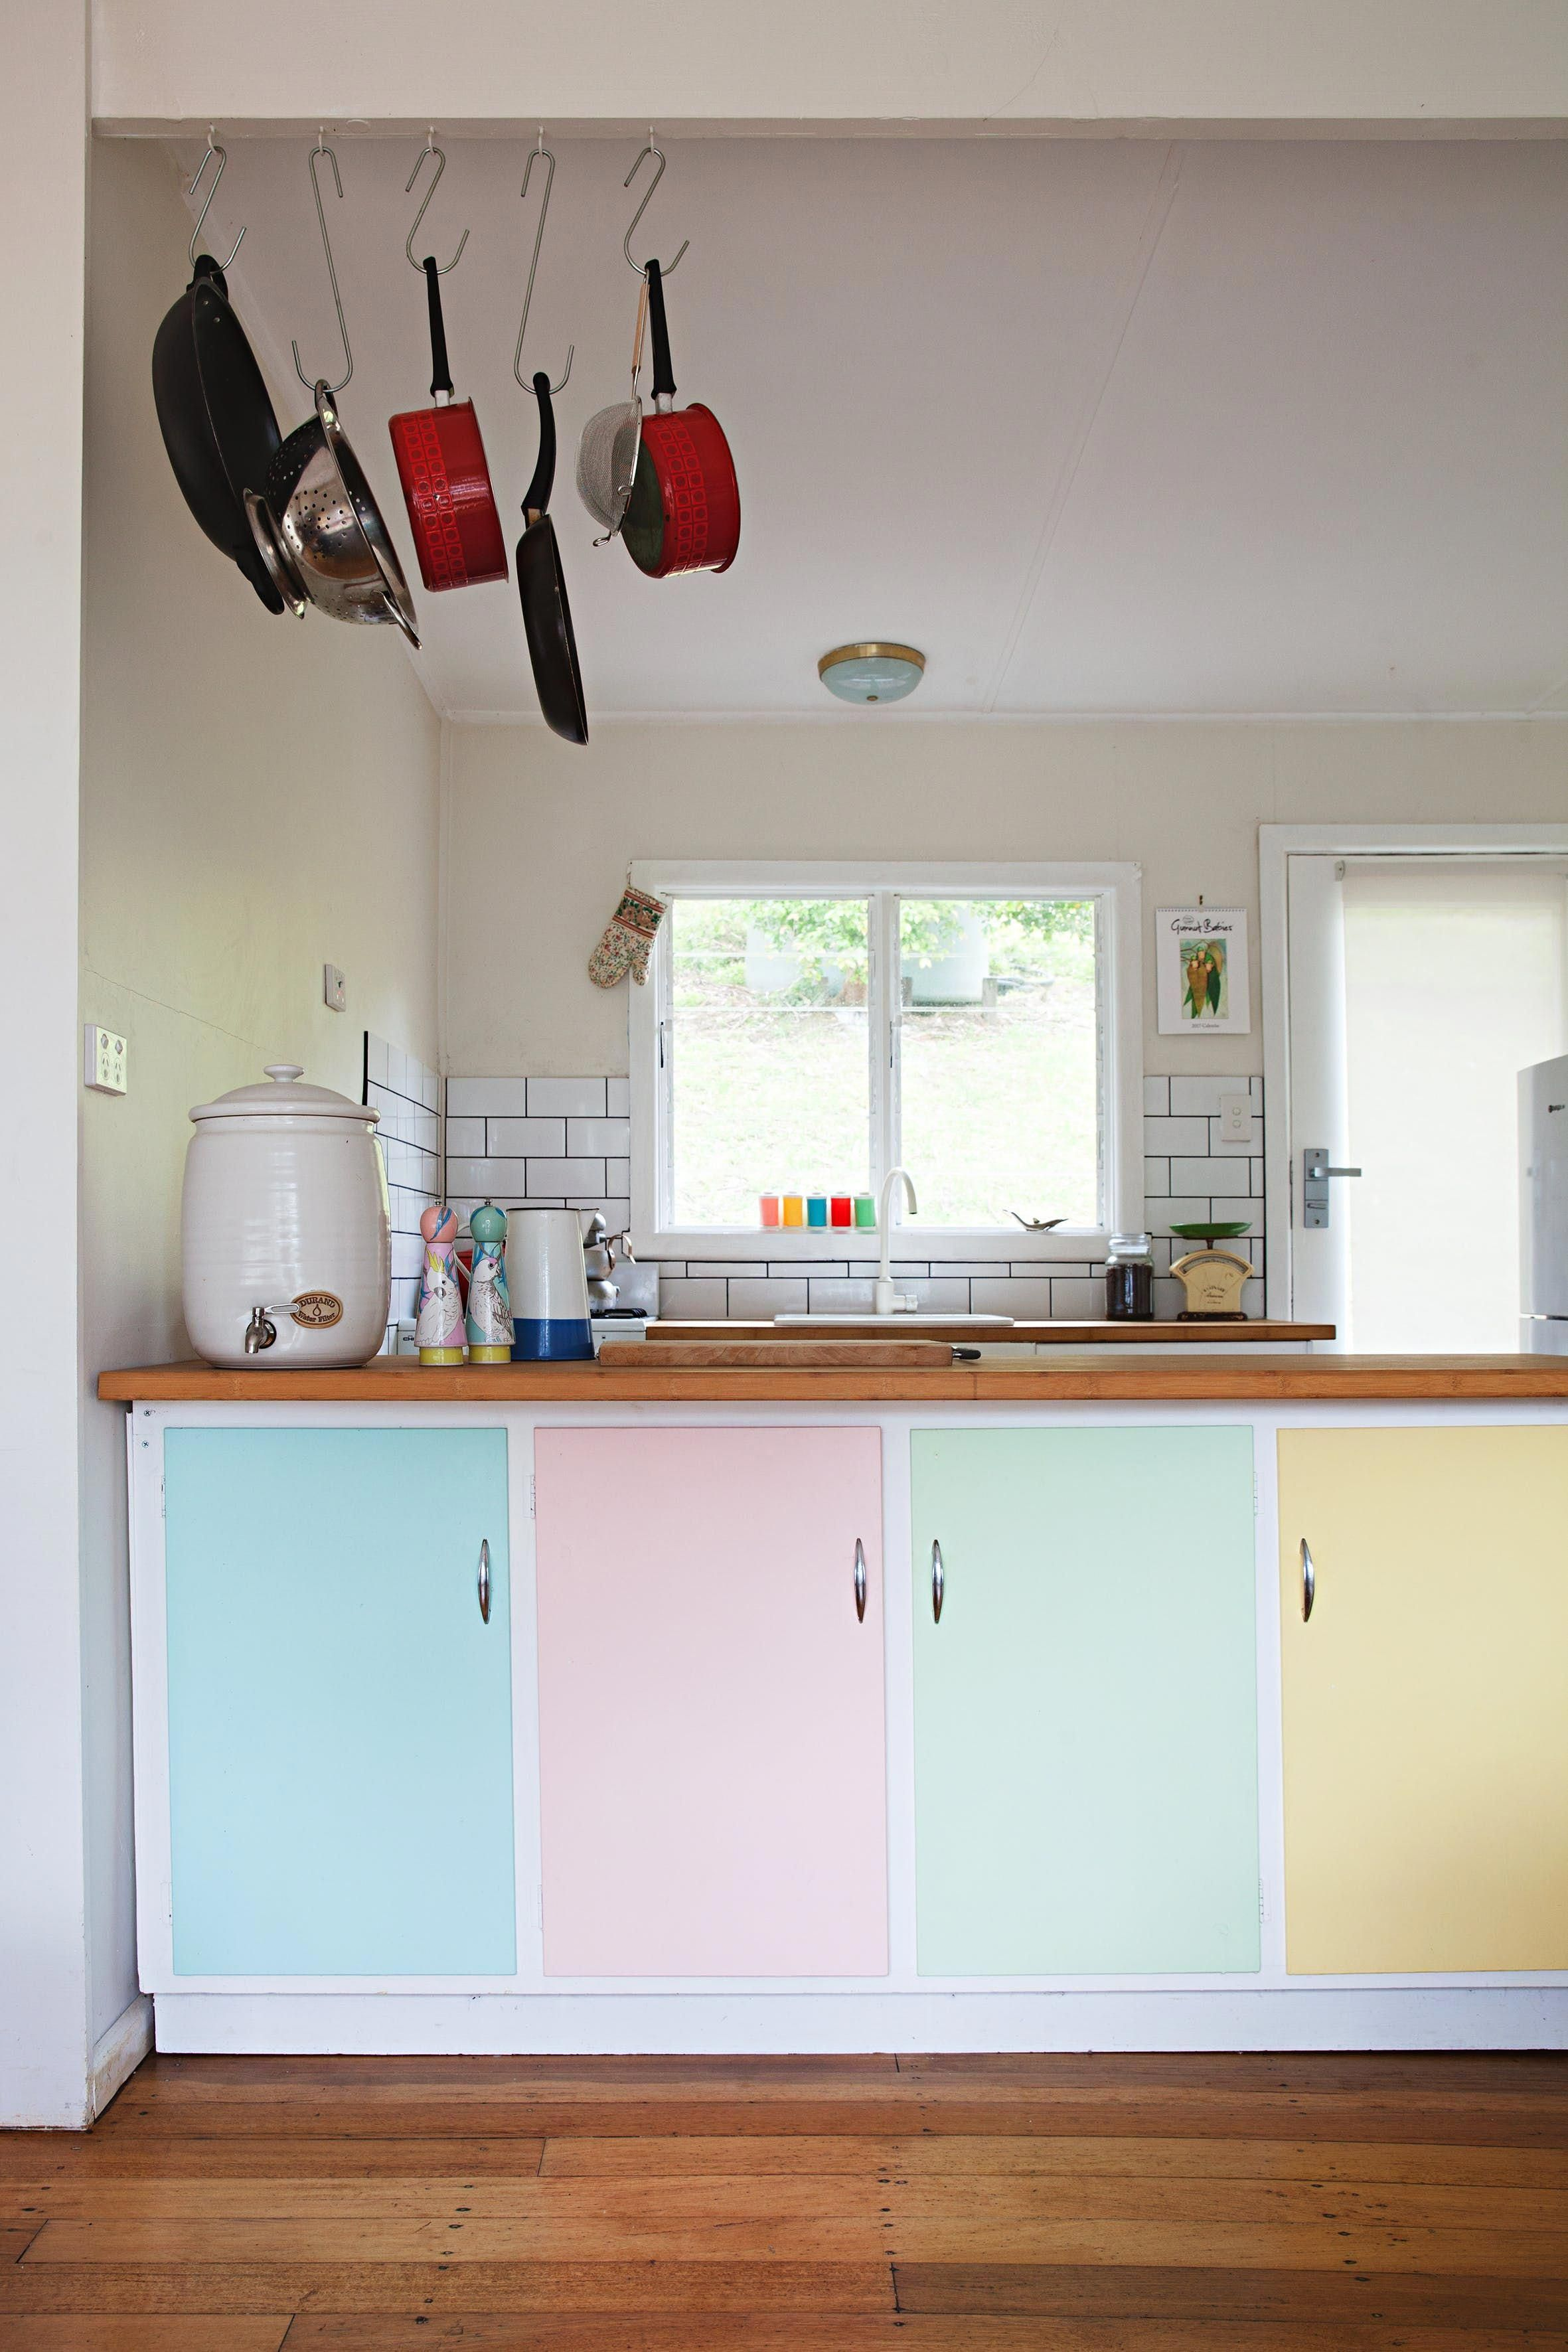 Retro Inspired Kitchen Cupboards Painted With Pastel Colors By Phoebe Modernhomedecorkitchen Retro Beach House Home Decor Kitchen Beach Cottage Decor